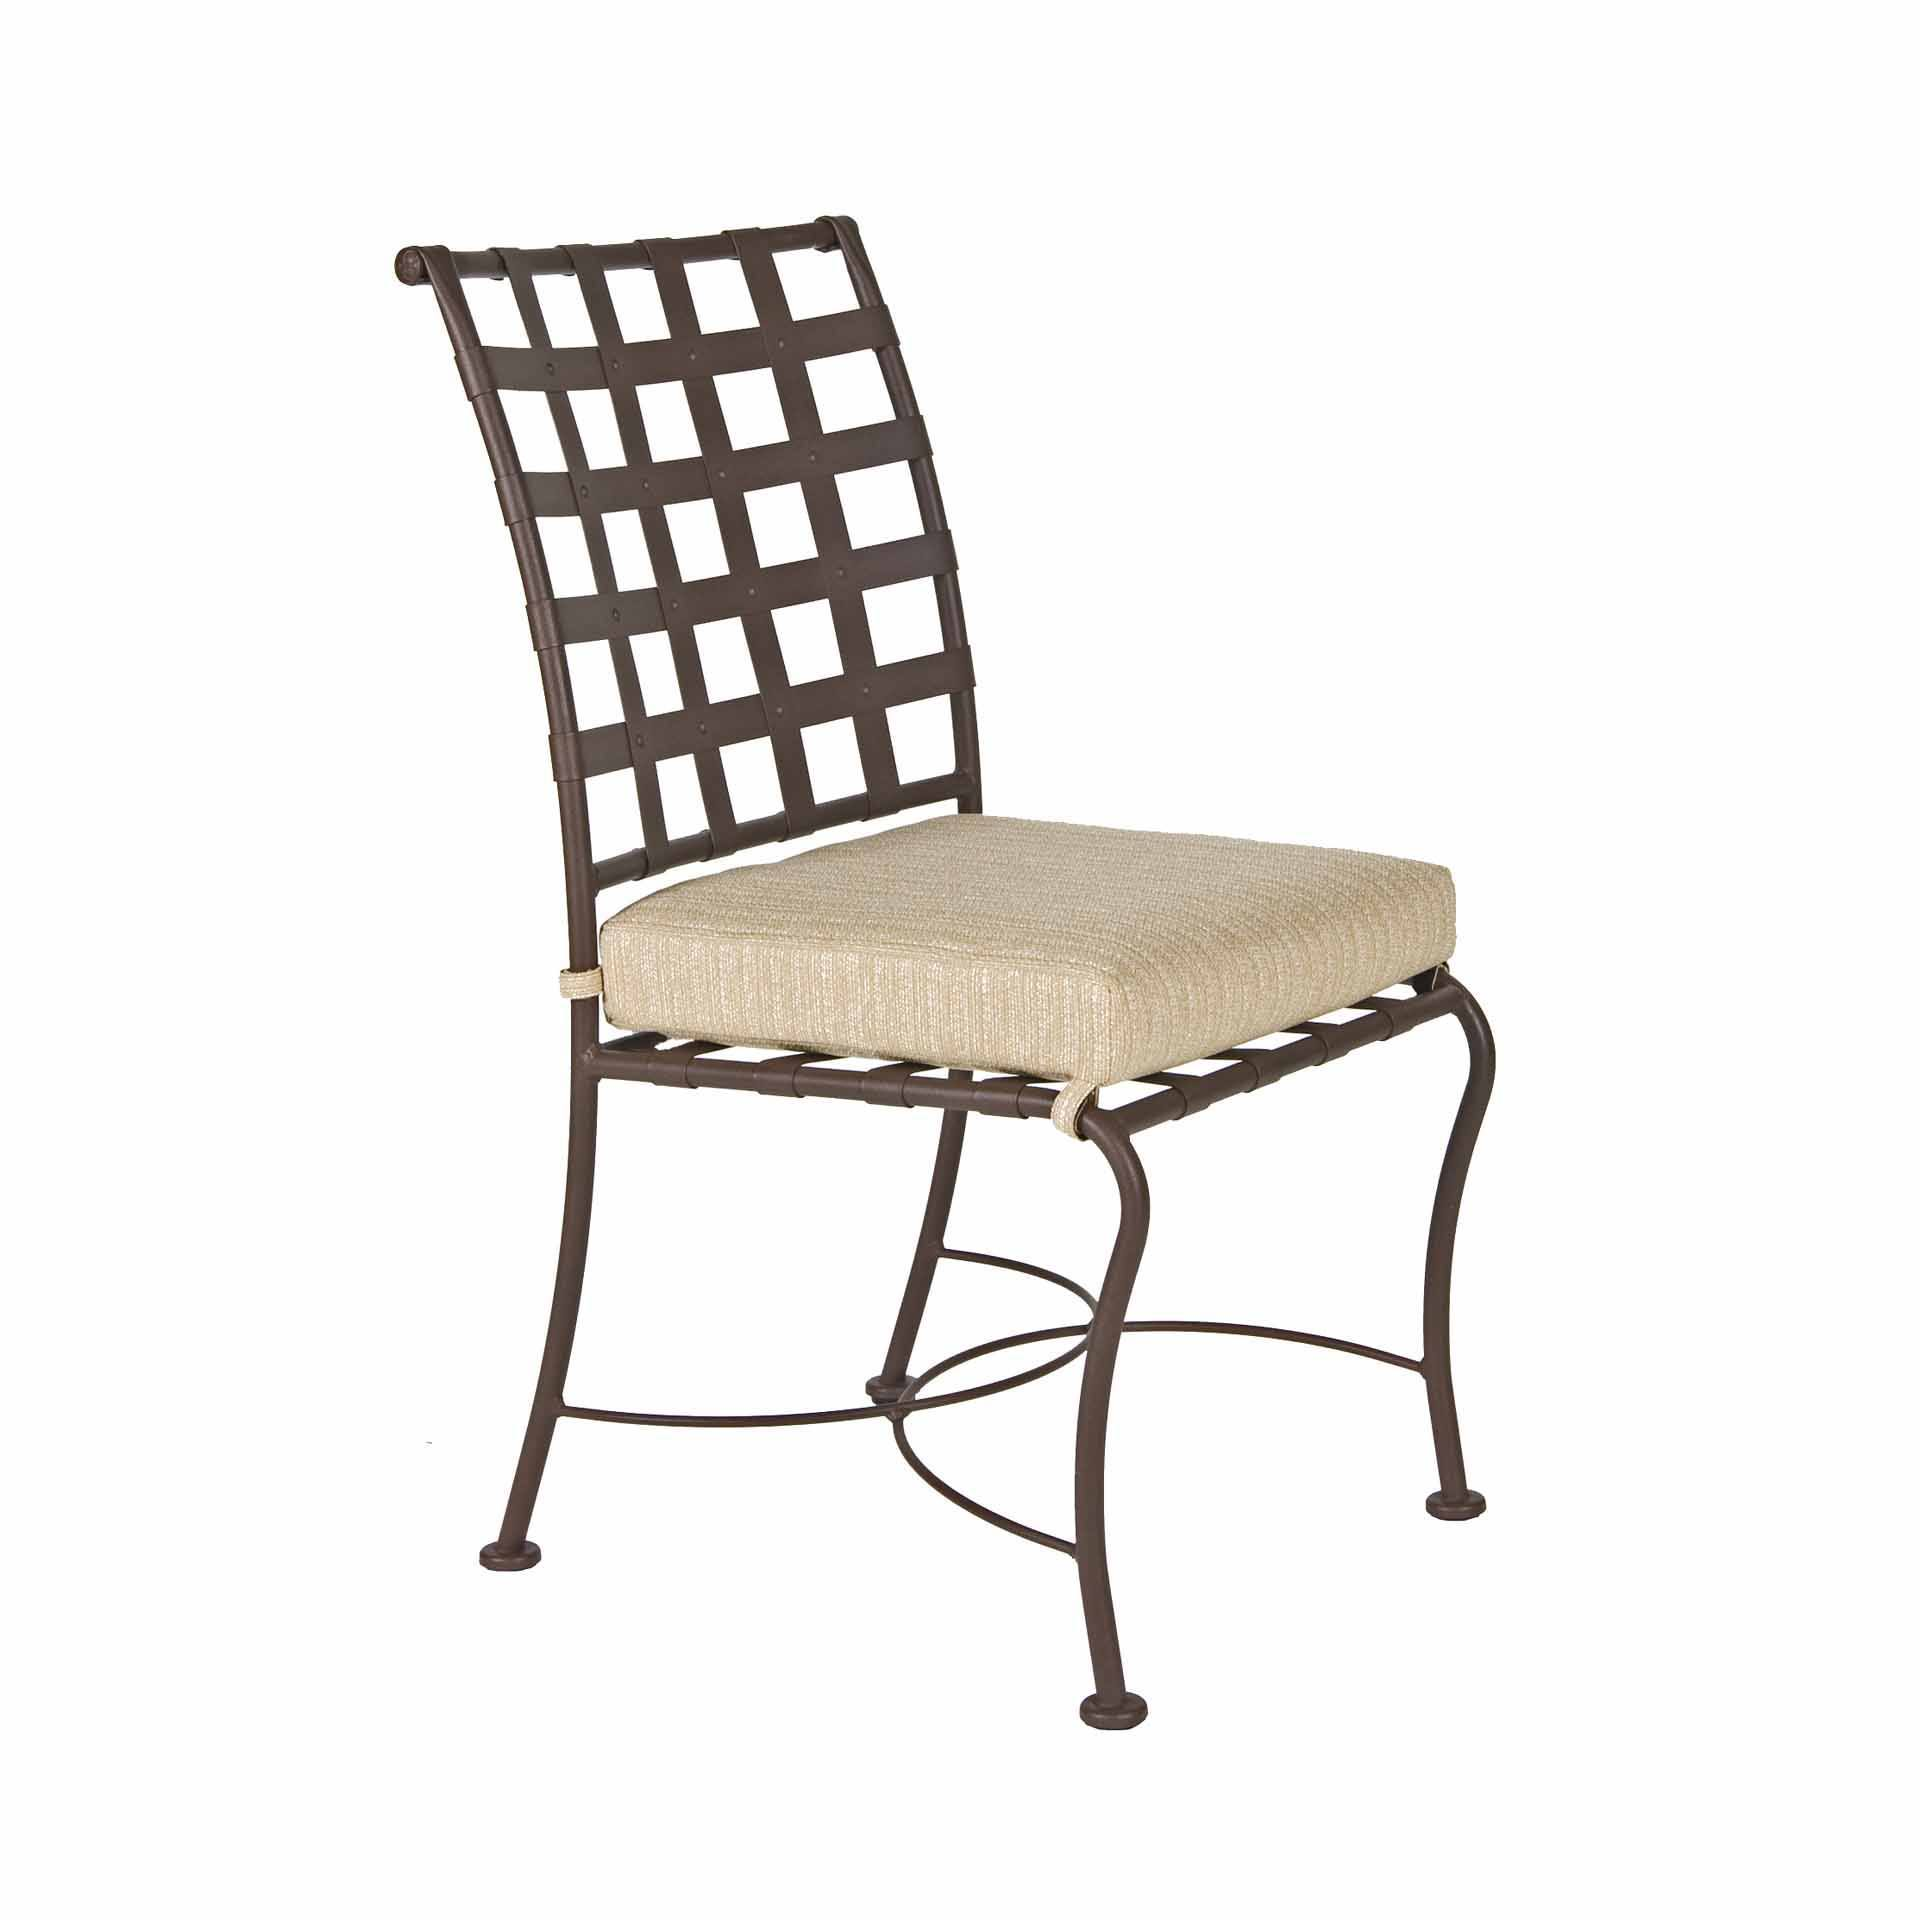 Ow Lee Classico Dining Side Chair Leisure Living